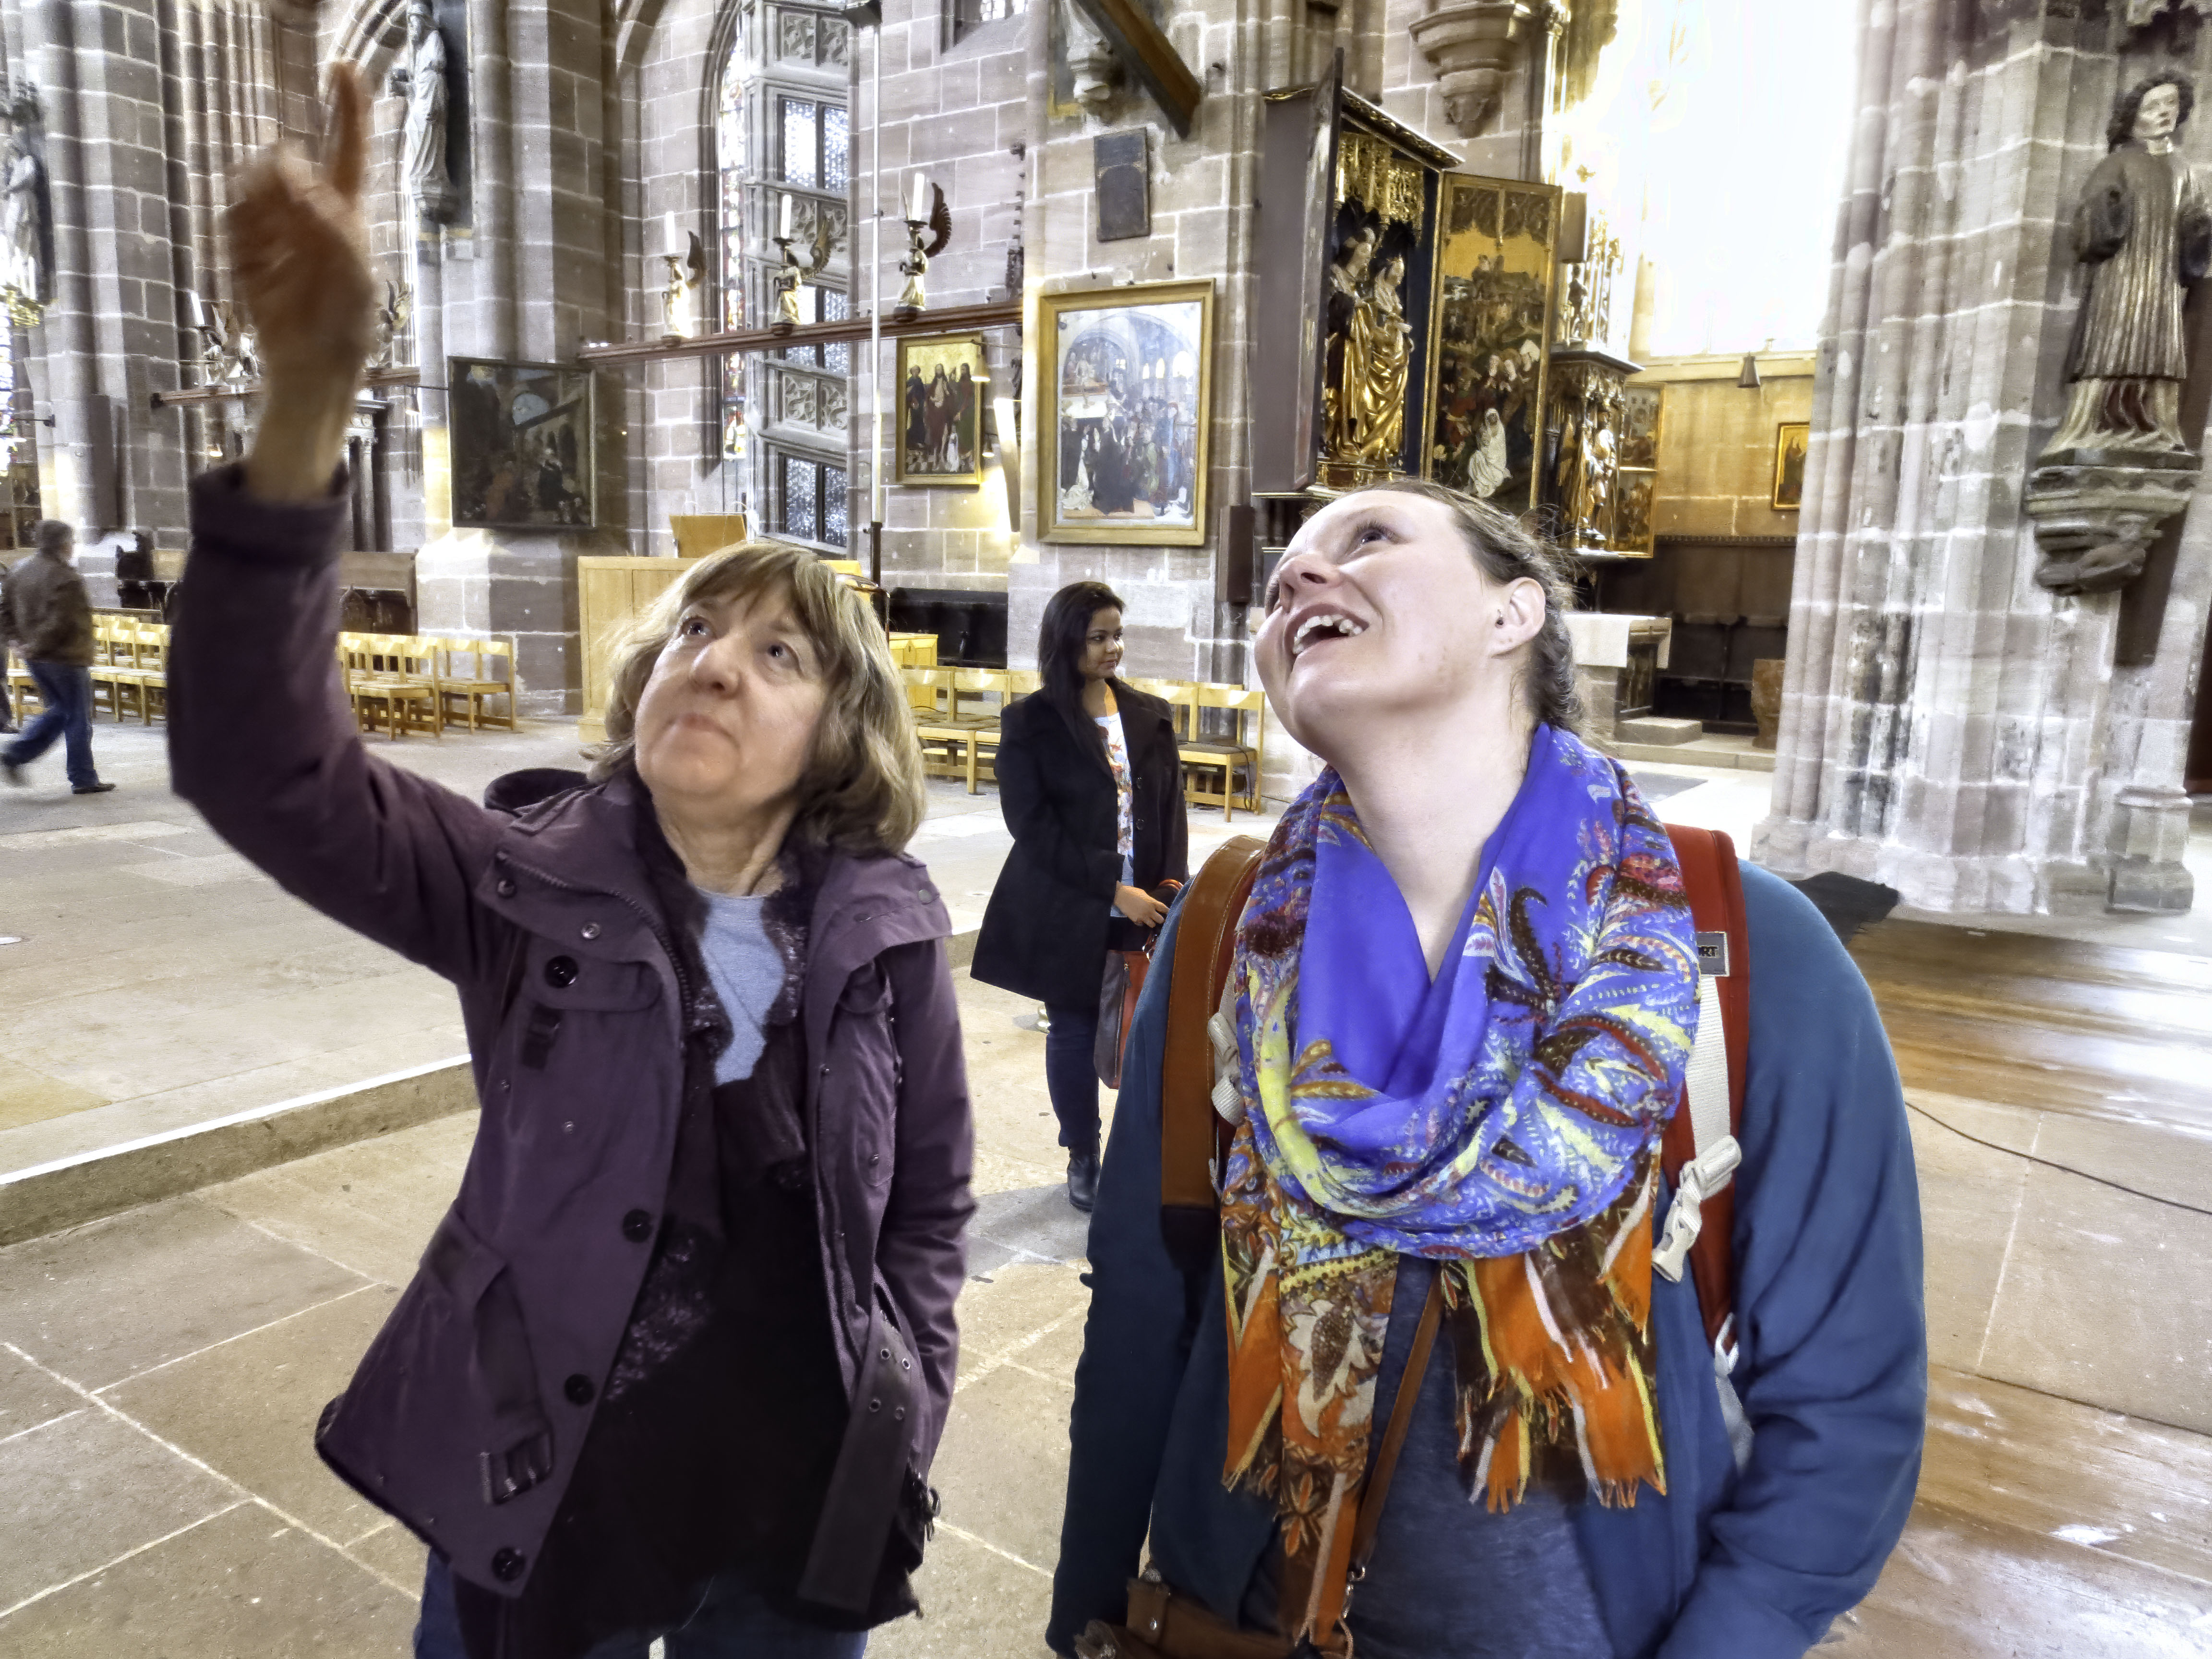 Intergenerational study sparks new art theory